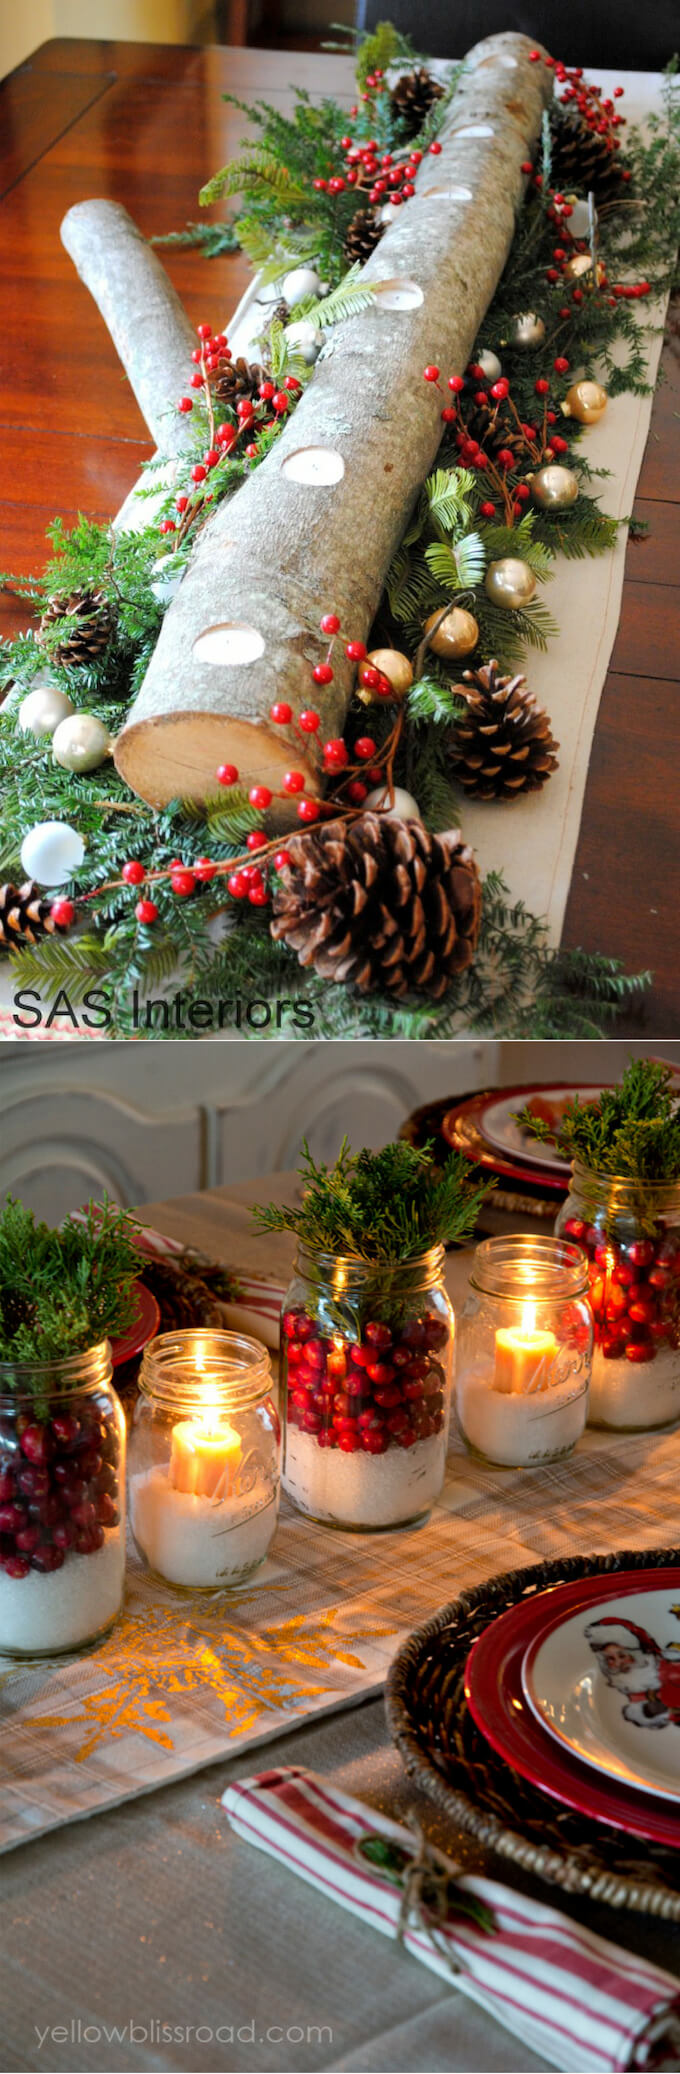 Mason Jars & Log Mantel | Best Elegant Christmas Centerpieces & Designs | Farmfoodfamily.com